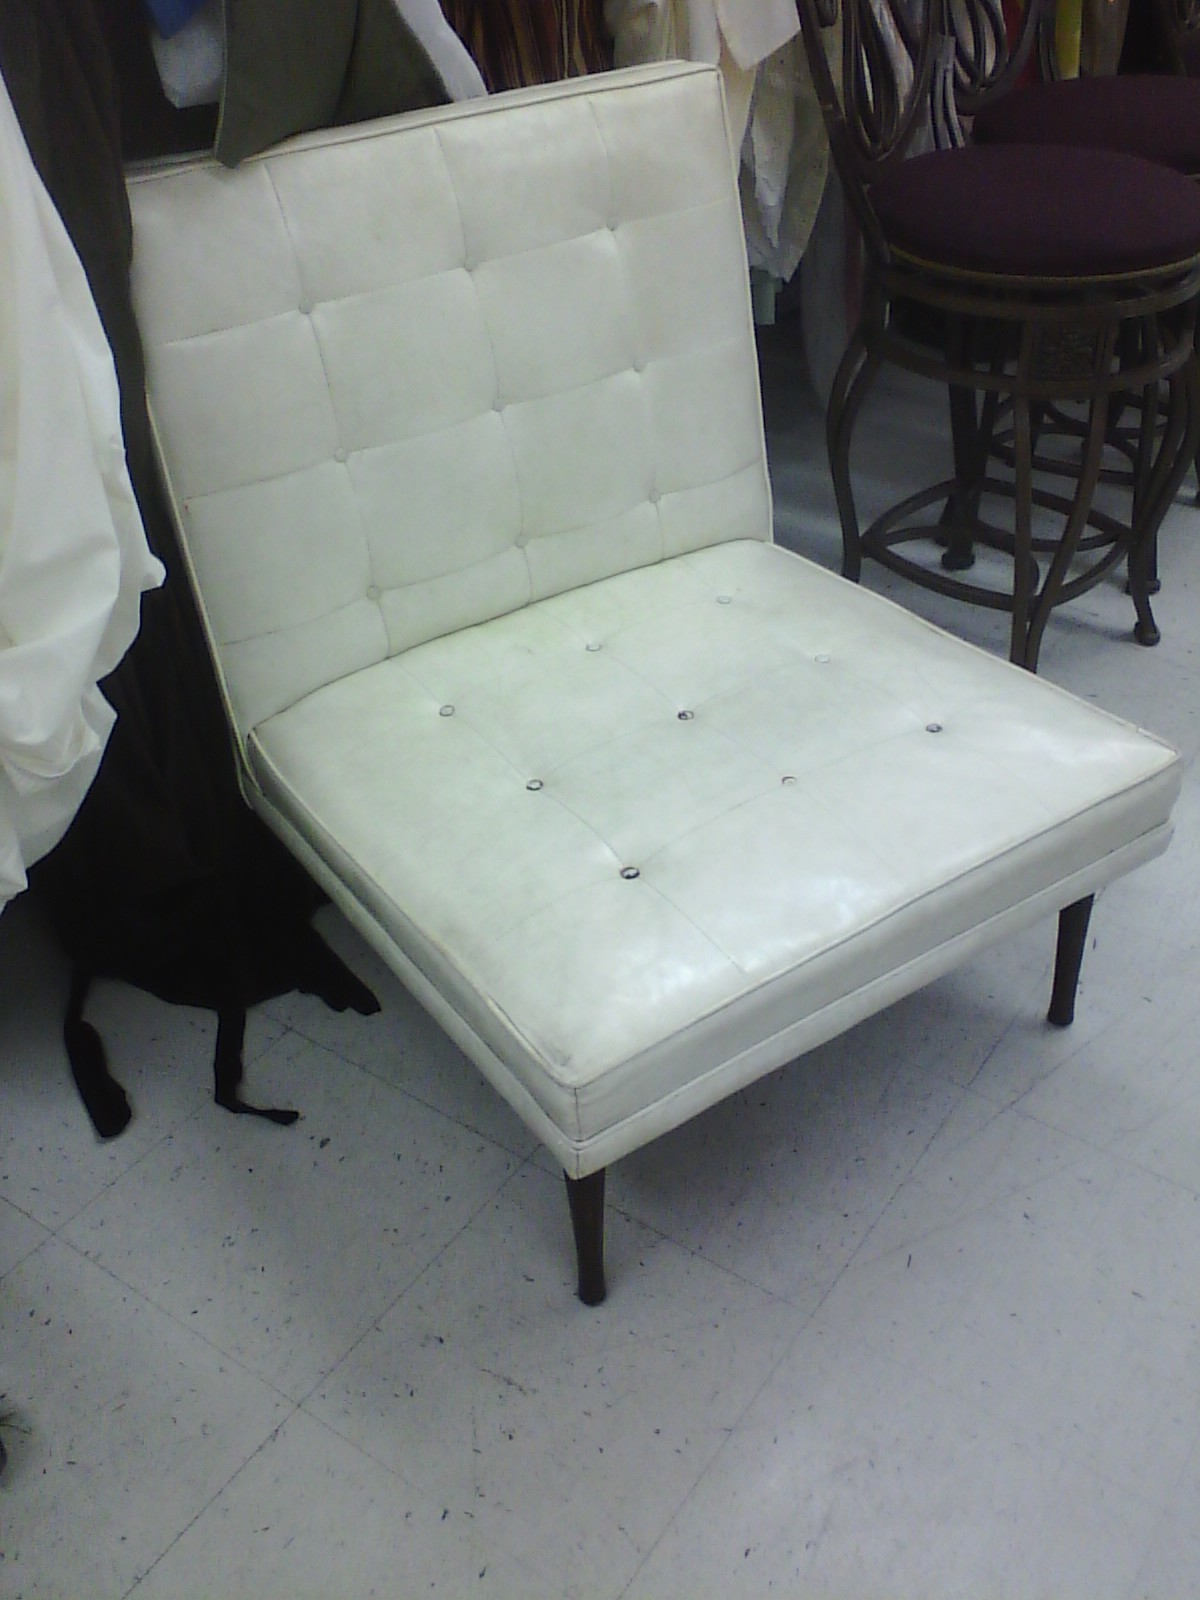 ... V__7ACF & The Poor Manu0027s Barcelona Chair: Restoring a Thrift Store Surprise ...